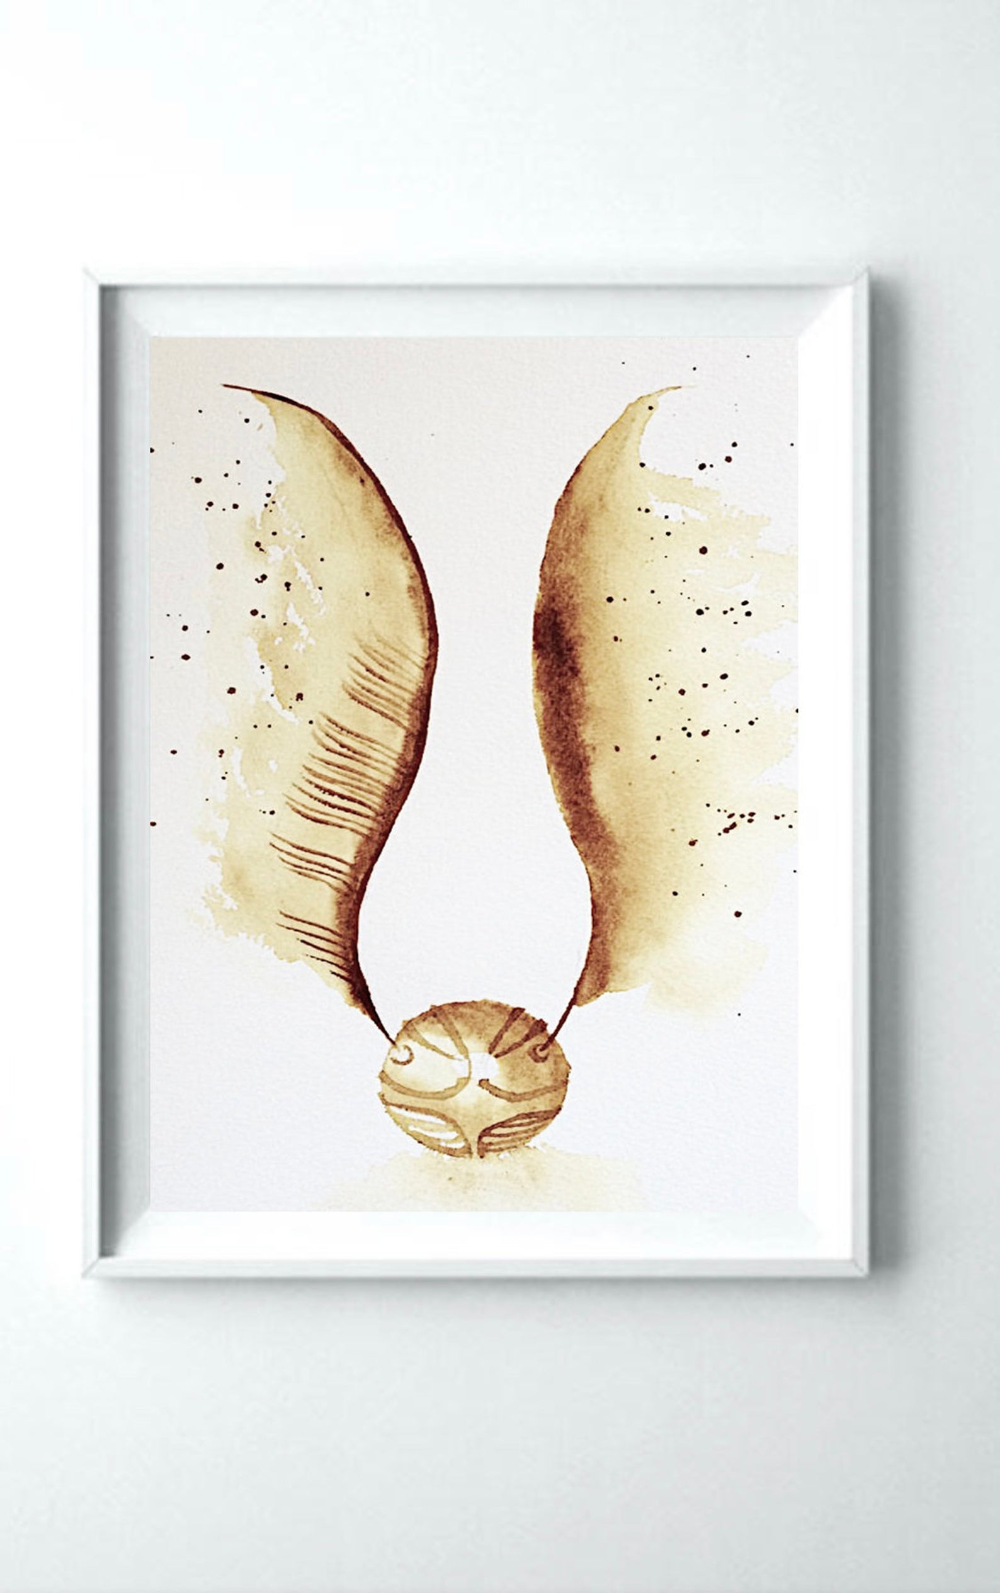 Photo of Golden Snitch Art Print, Harry Potter, Wall Art, Gift, Daniel Radcliffe, Warner Brothers, Movie, 3 Colours